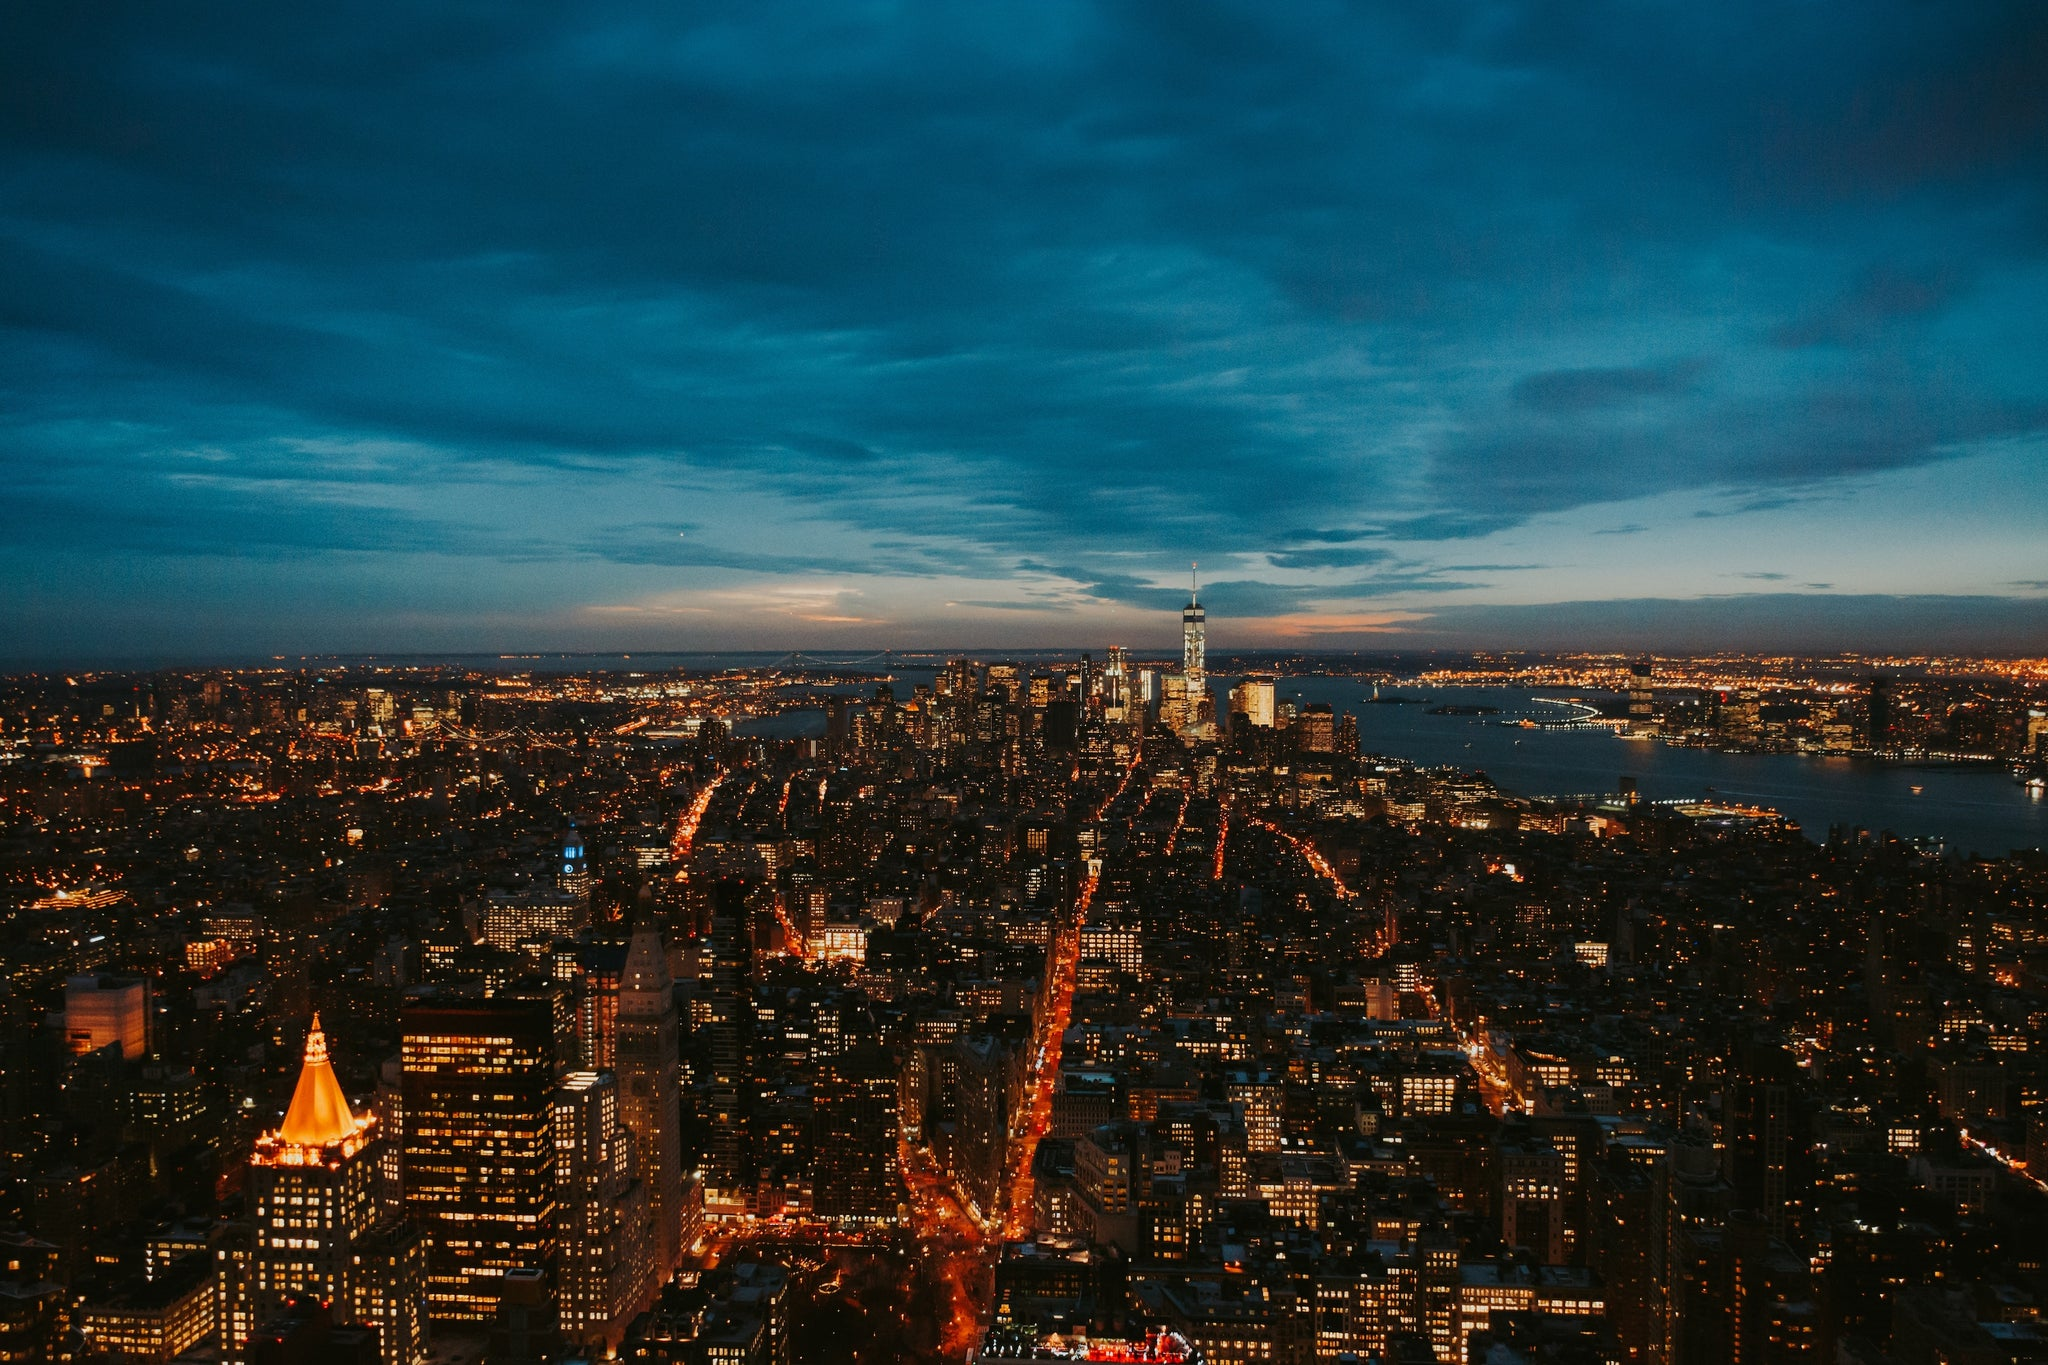 Ariel shot of an urban landscape at dusk. Photo by Z S on Unsplash